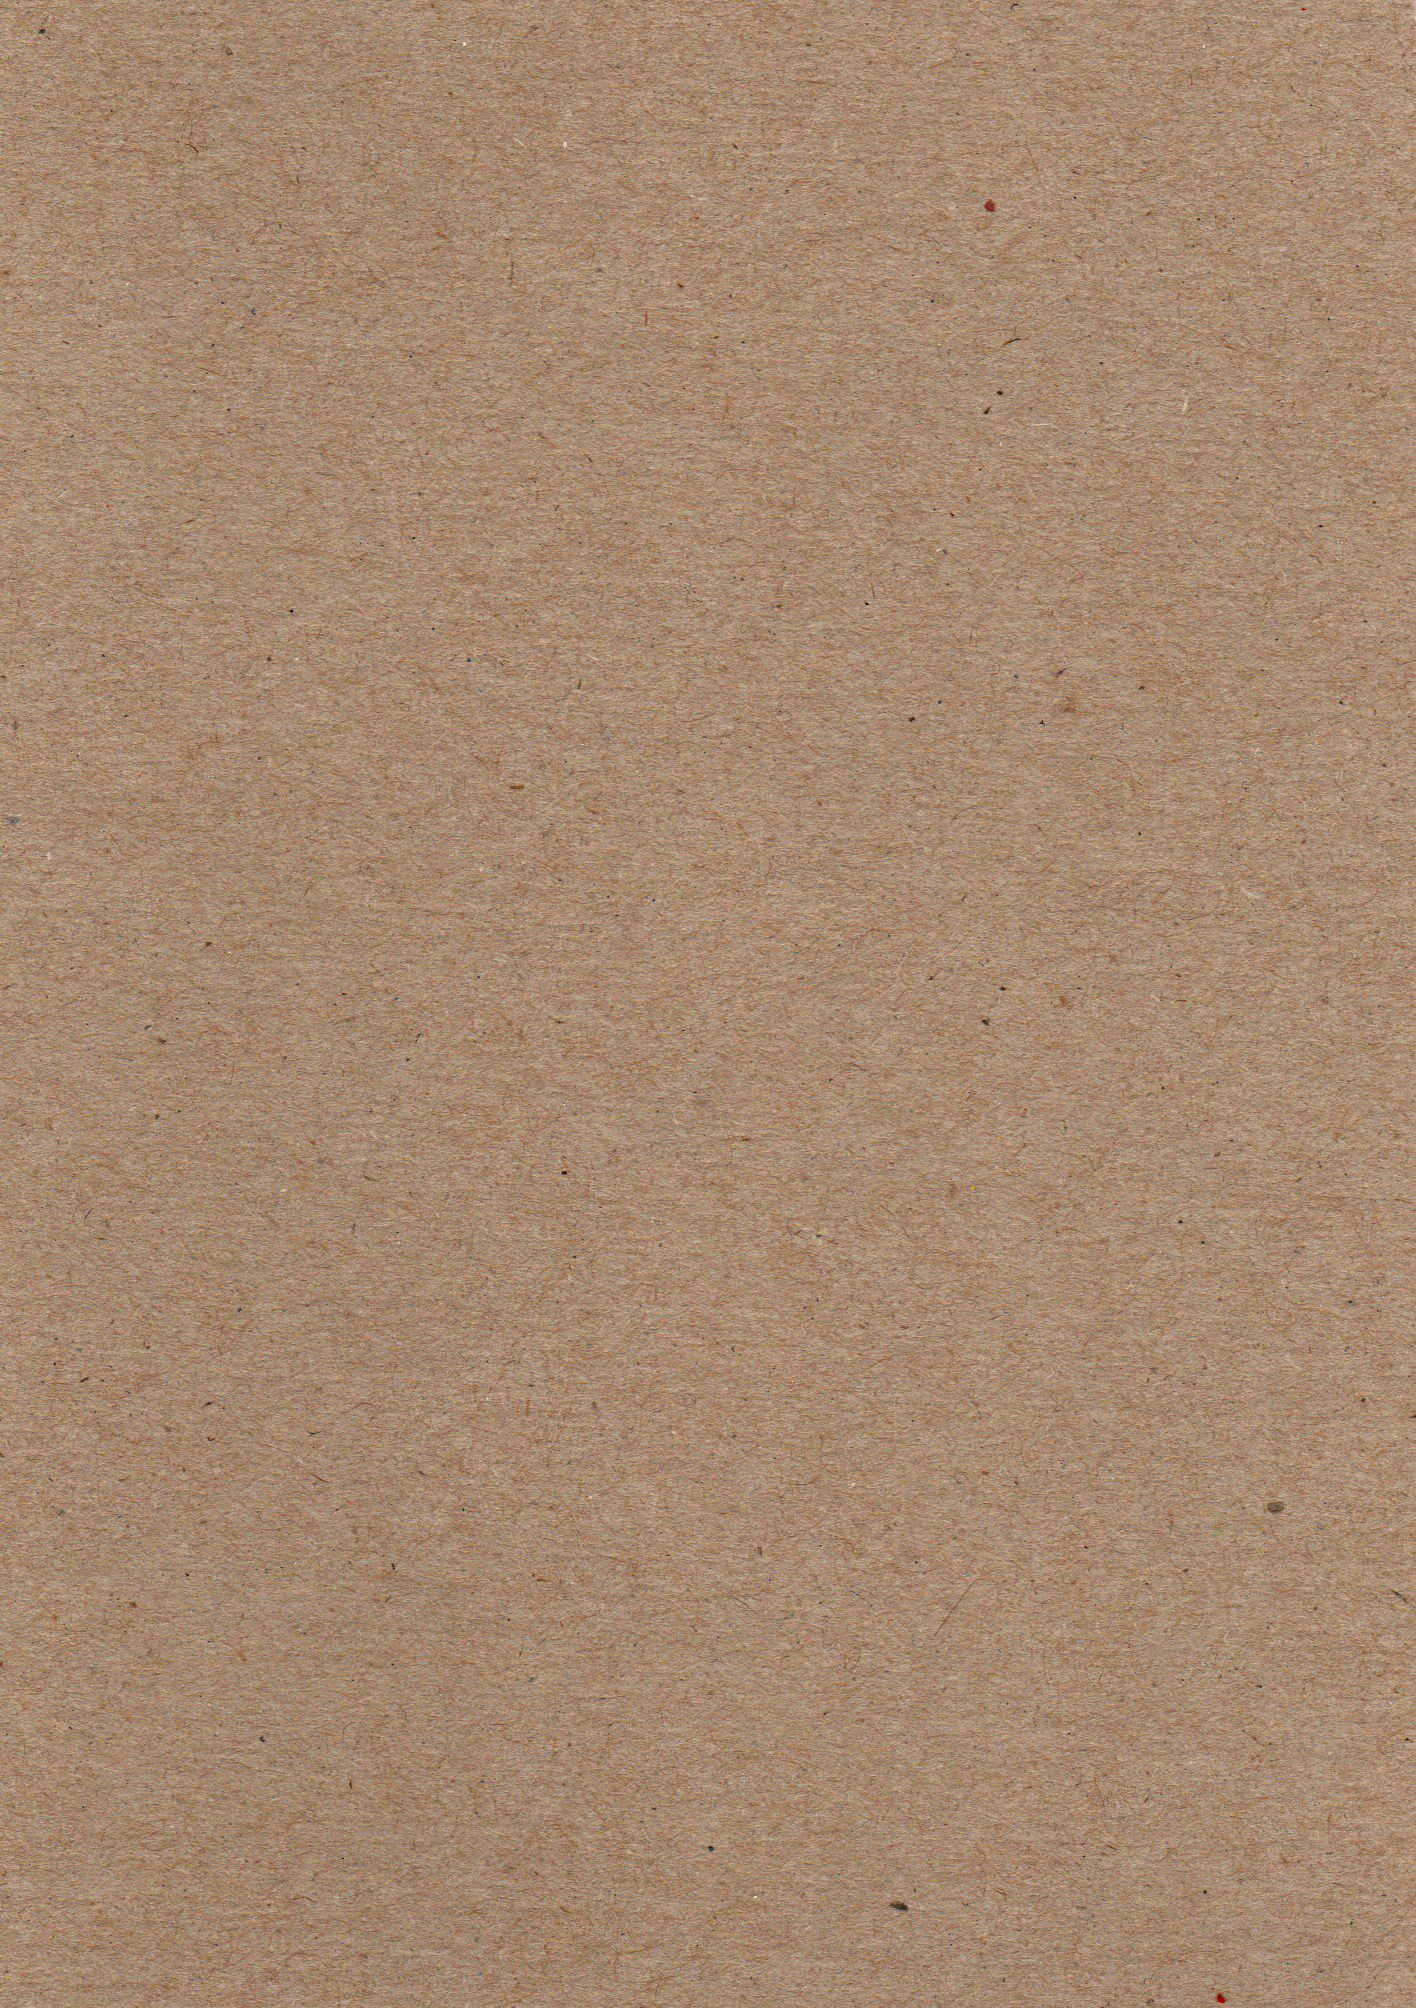 Free Brown Paper And Cardboard Texture Texture L T Paper Background Texture Brown Paper Textures Paper Texture